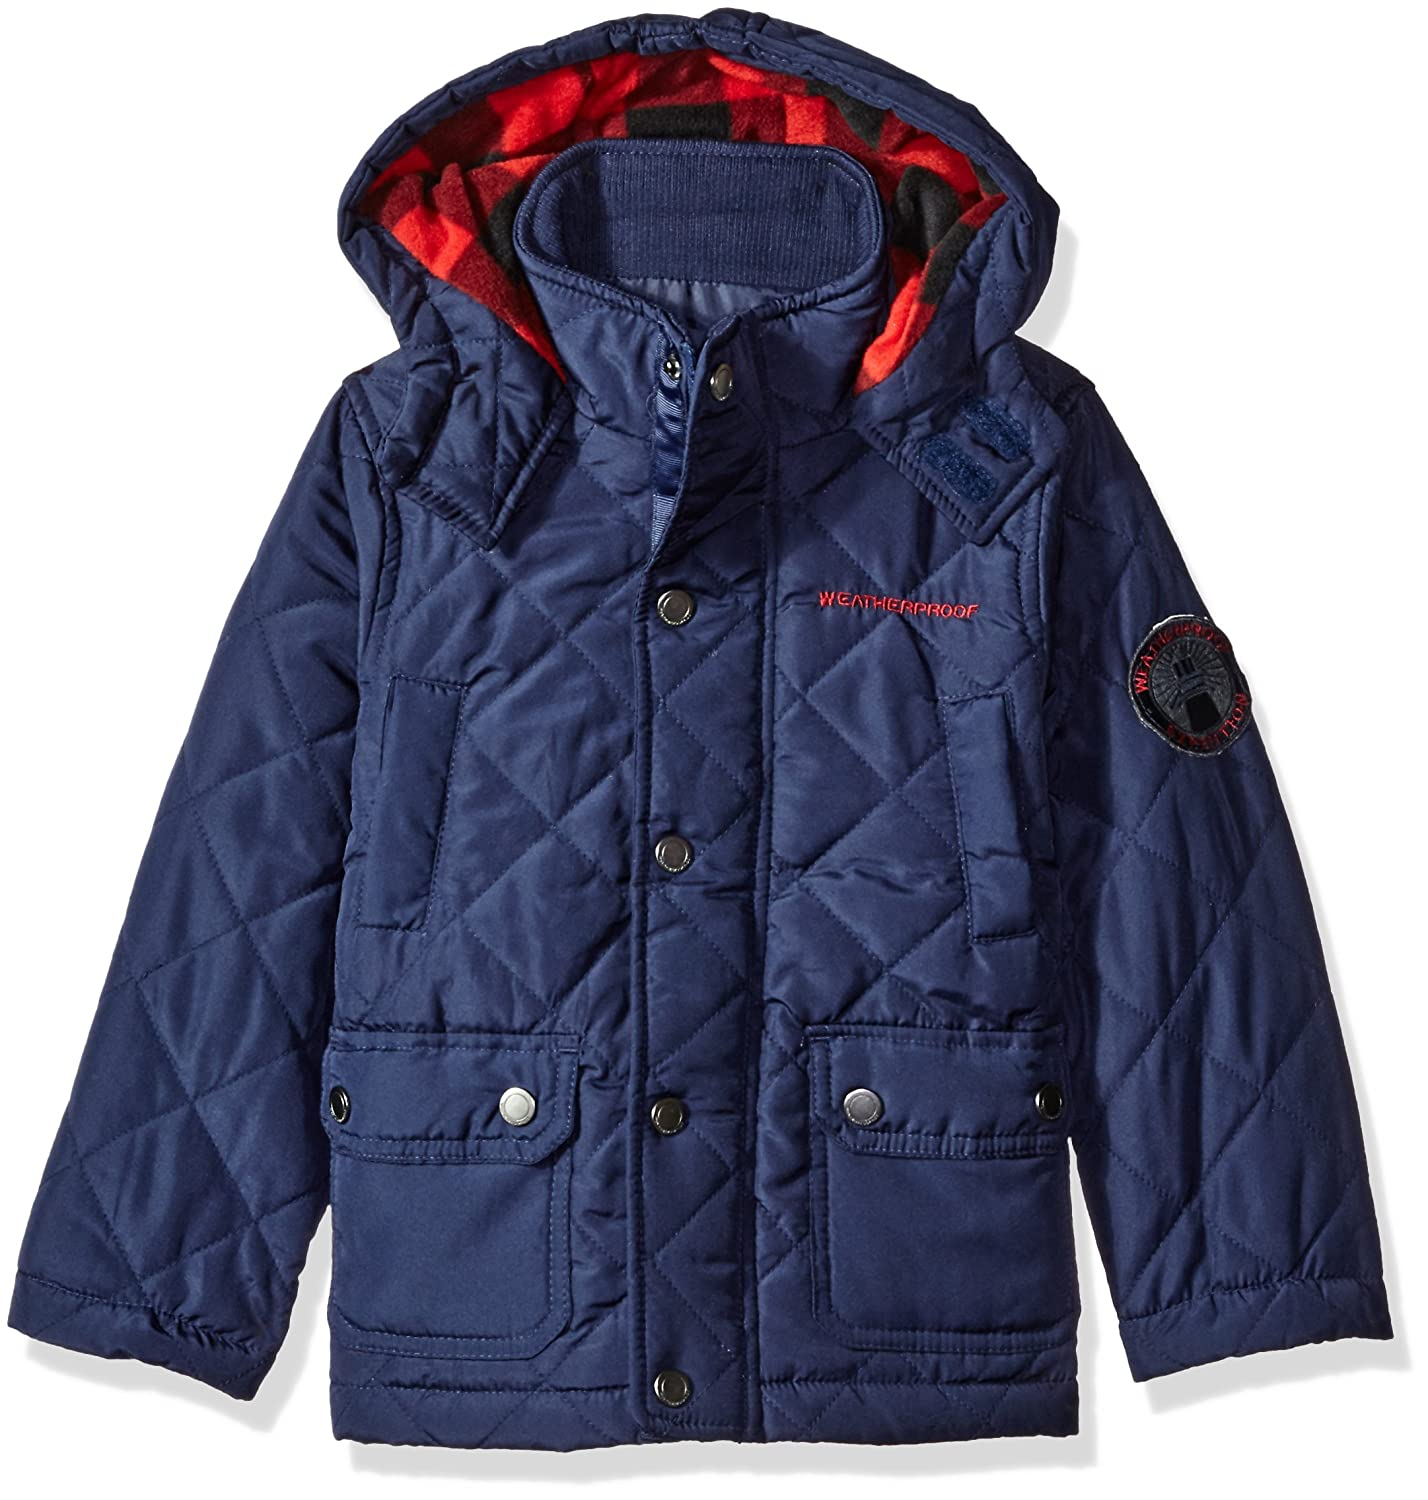 Weatherproof OUTERWEAR ボーイズ